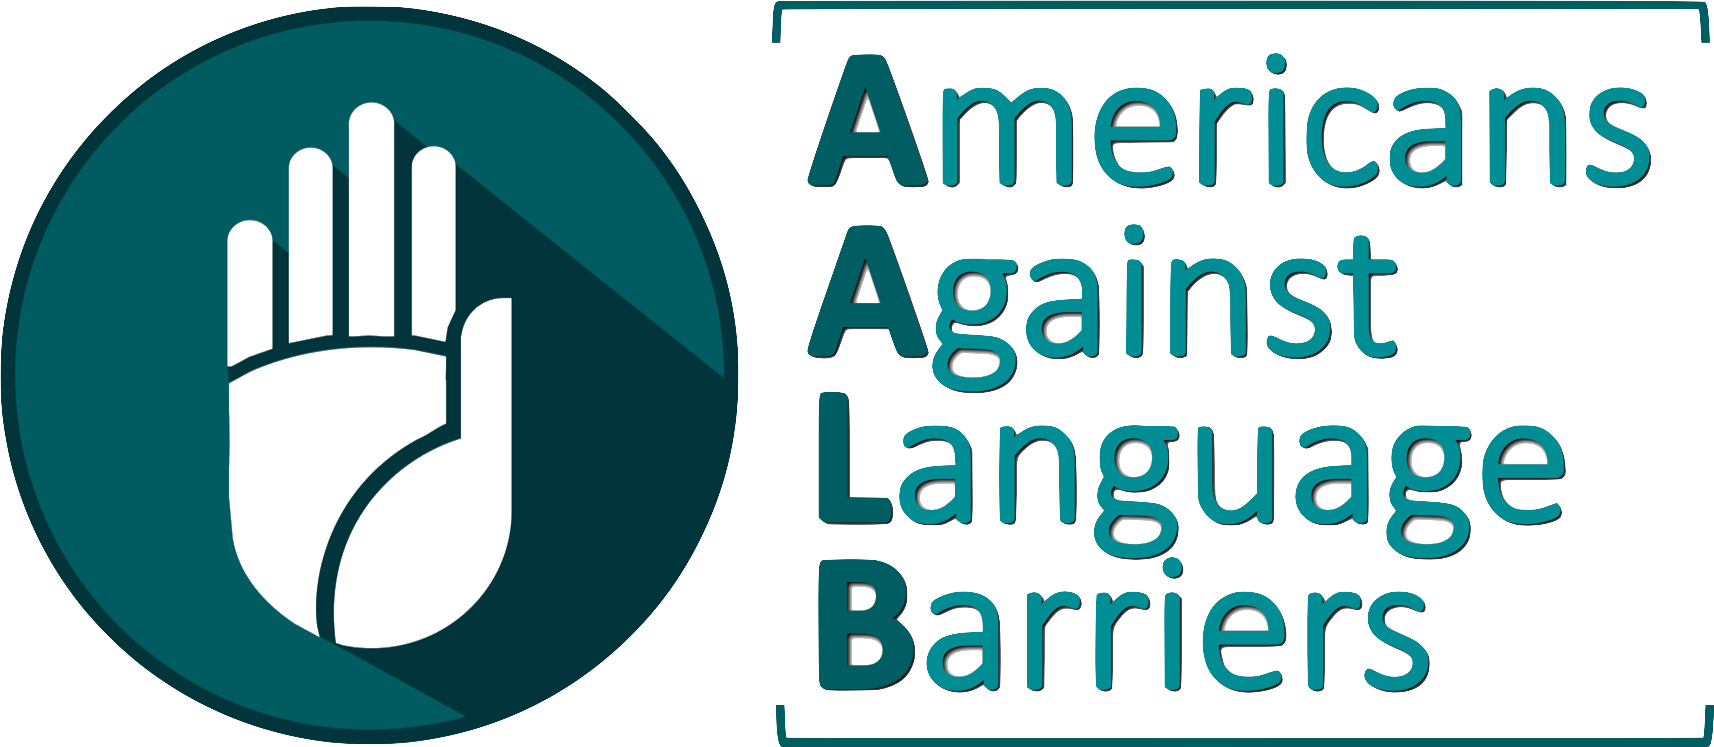 Americans Against Language Barriers